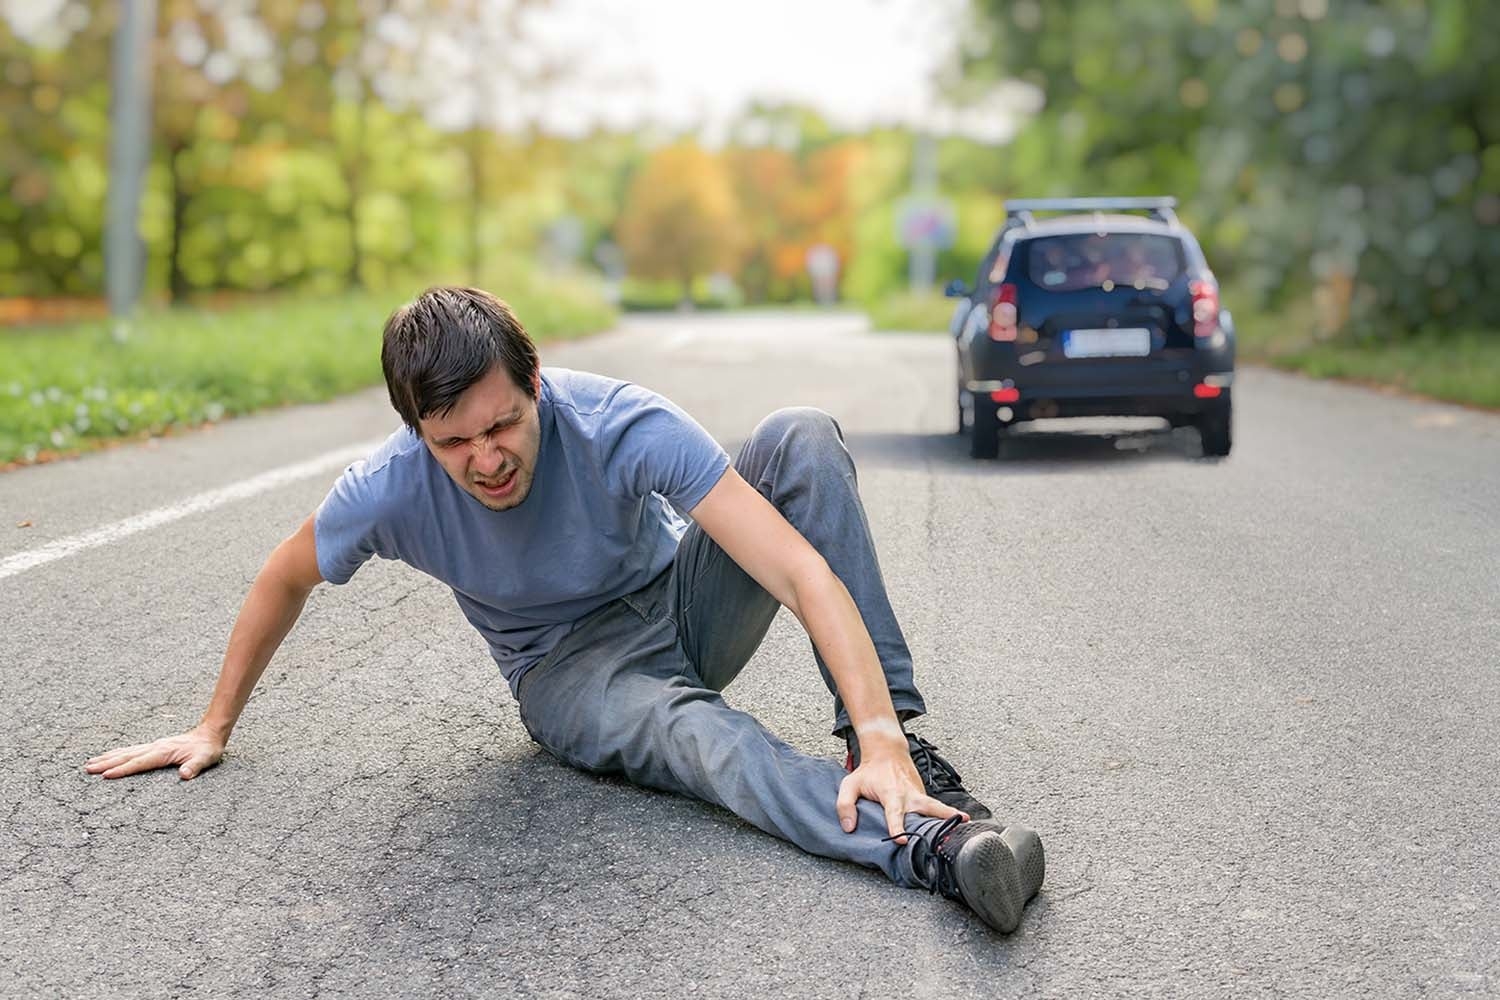 Attorney Car Accident Leg Injuries